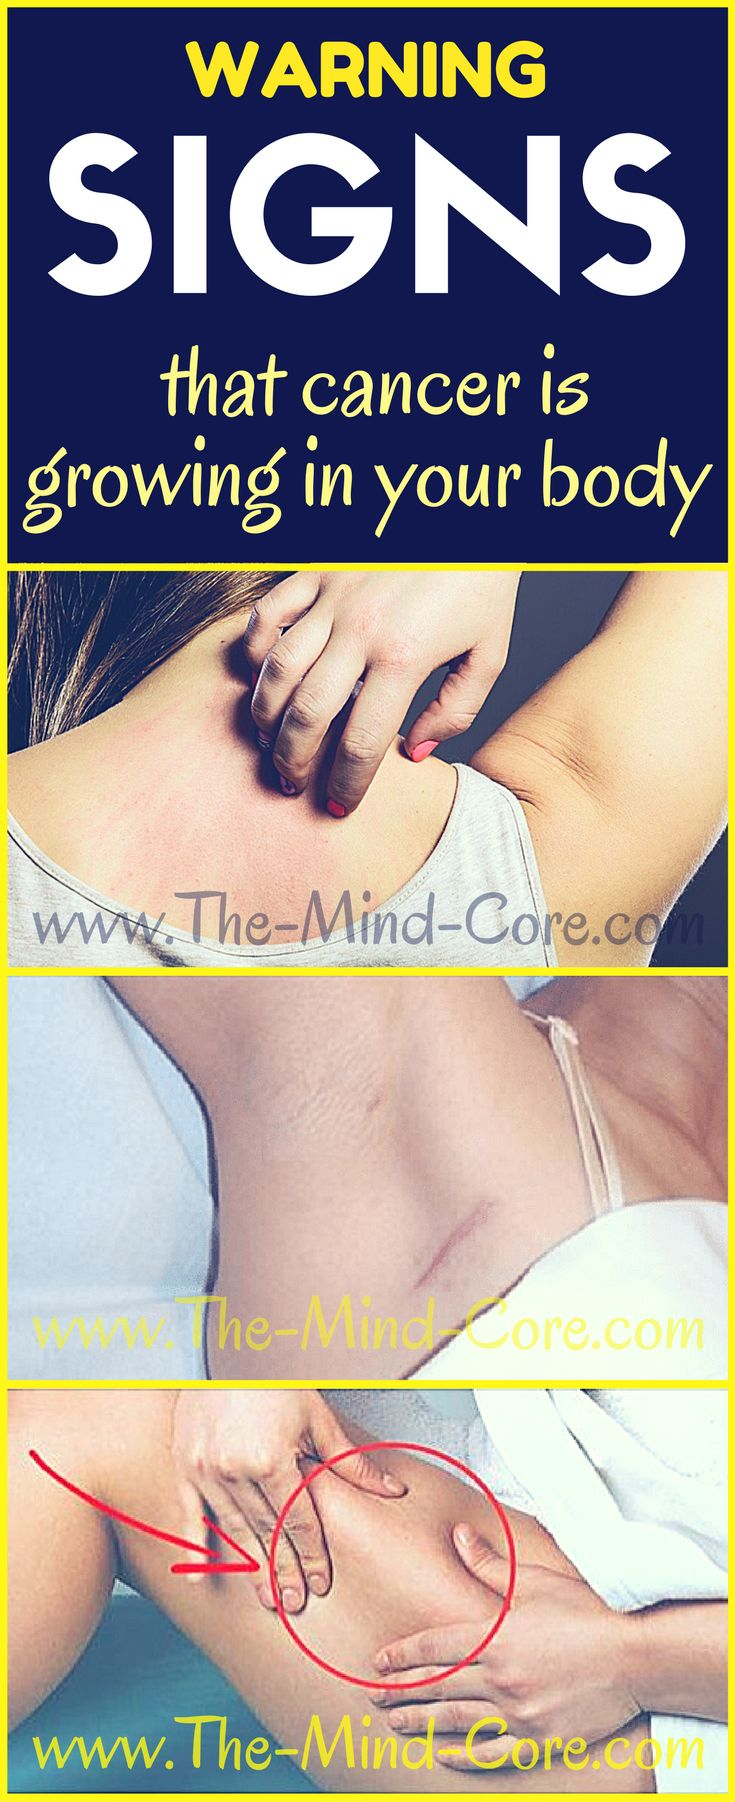 Early Warning Signs That Cancer is Growing in Your Body (Don't Ignore Them!)